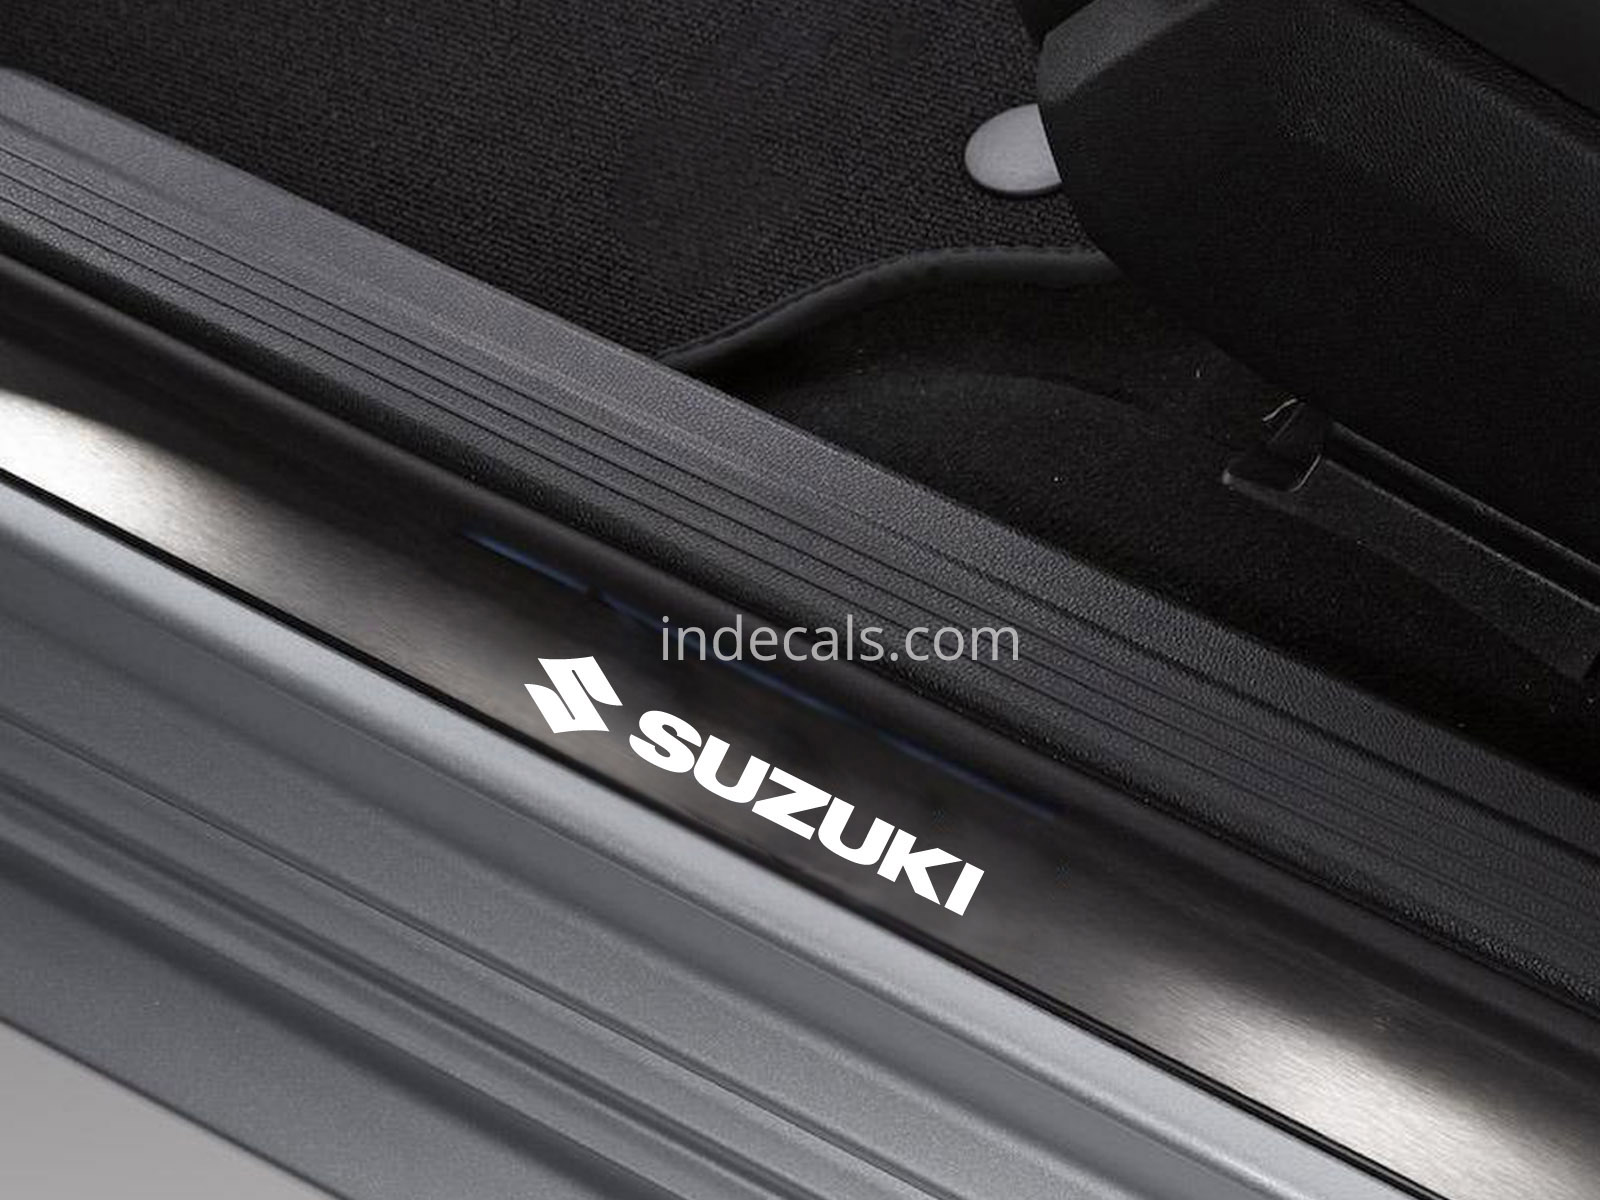 6 x Suzuki Stickers for Door Sills - White